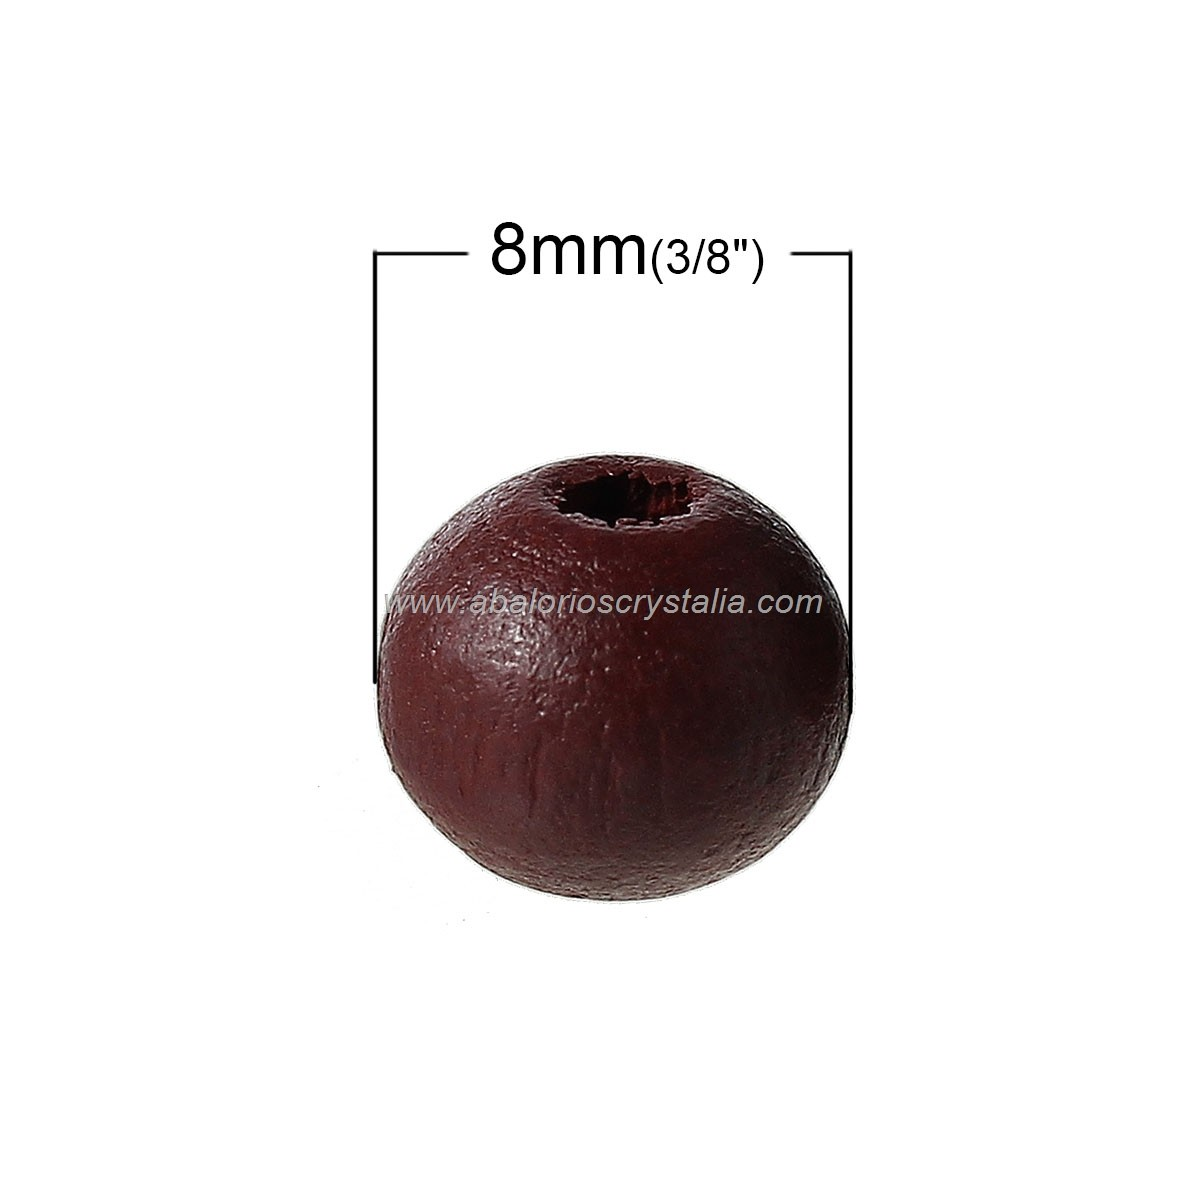 25 BOLAS DE MADERA MARRÓN 3, 8mm